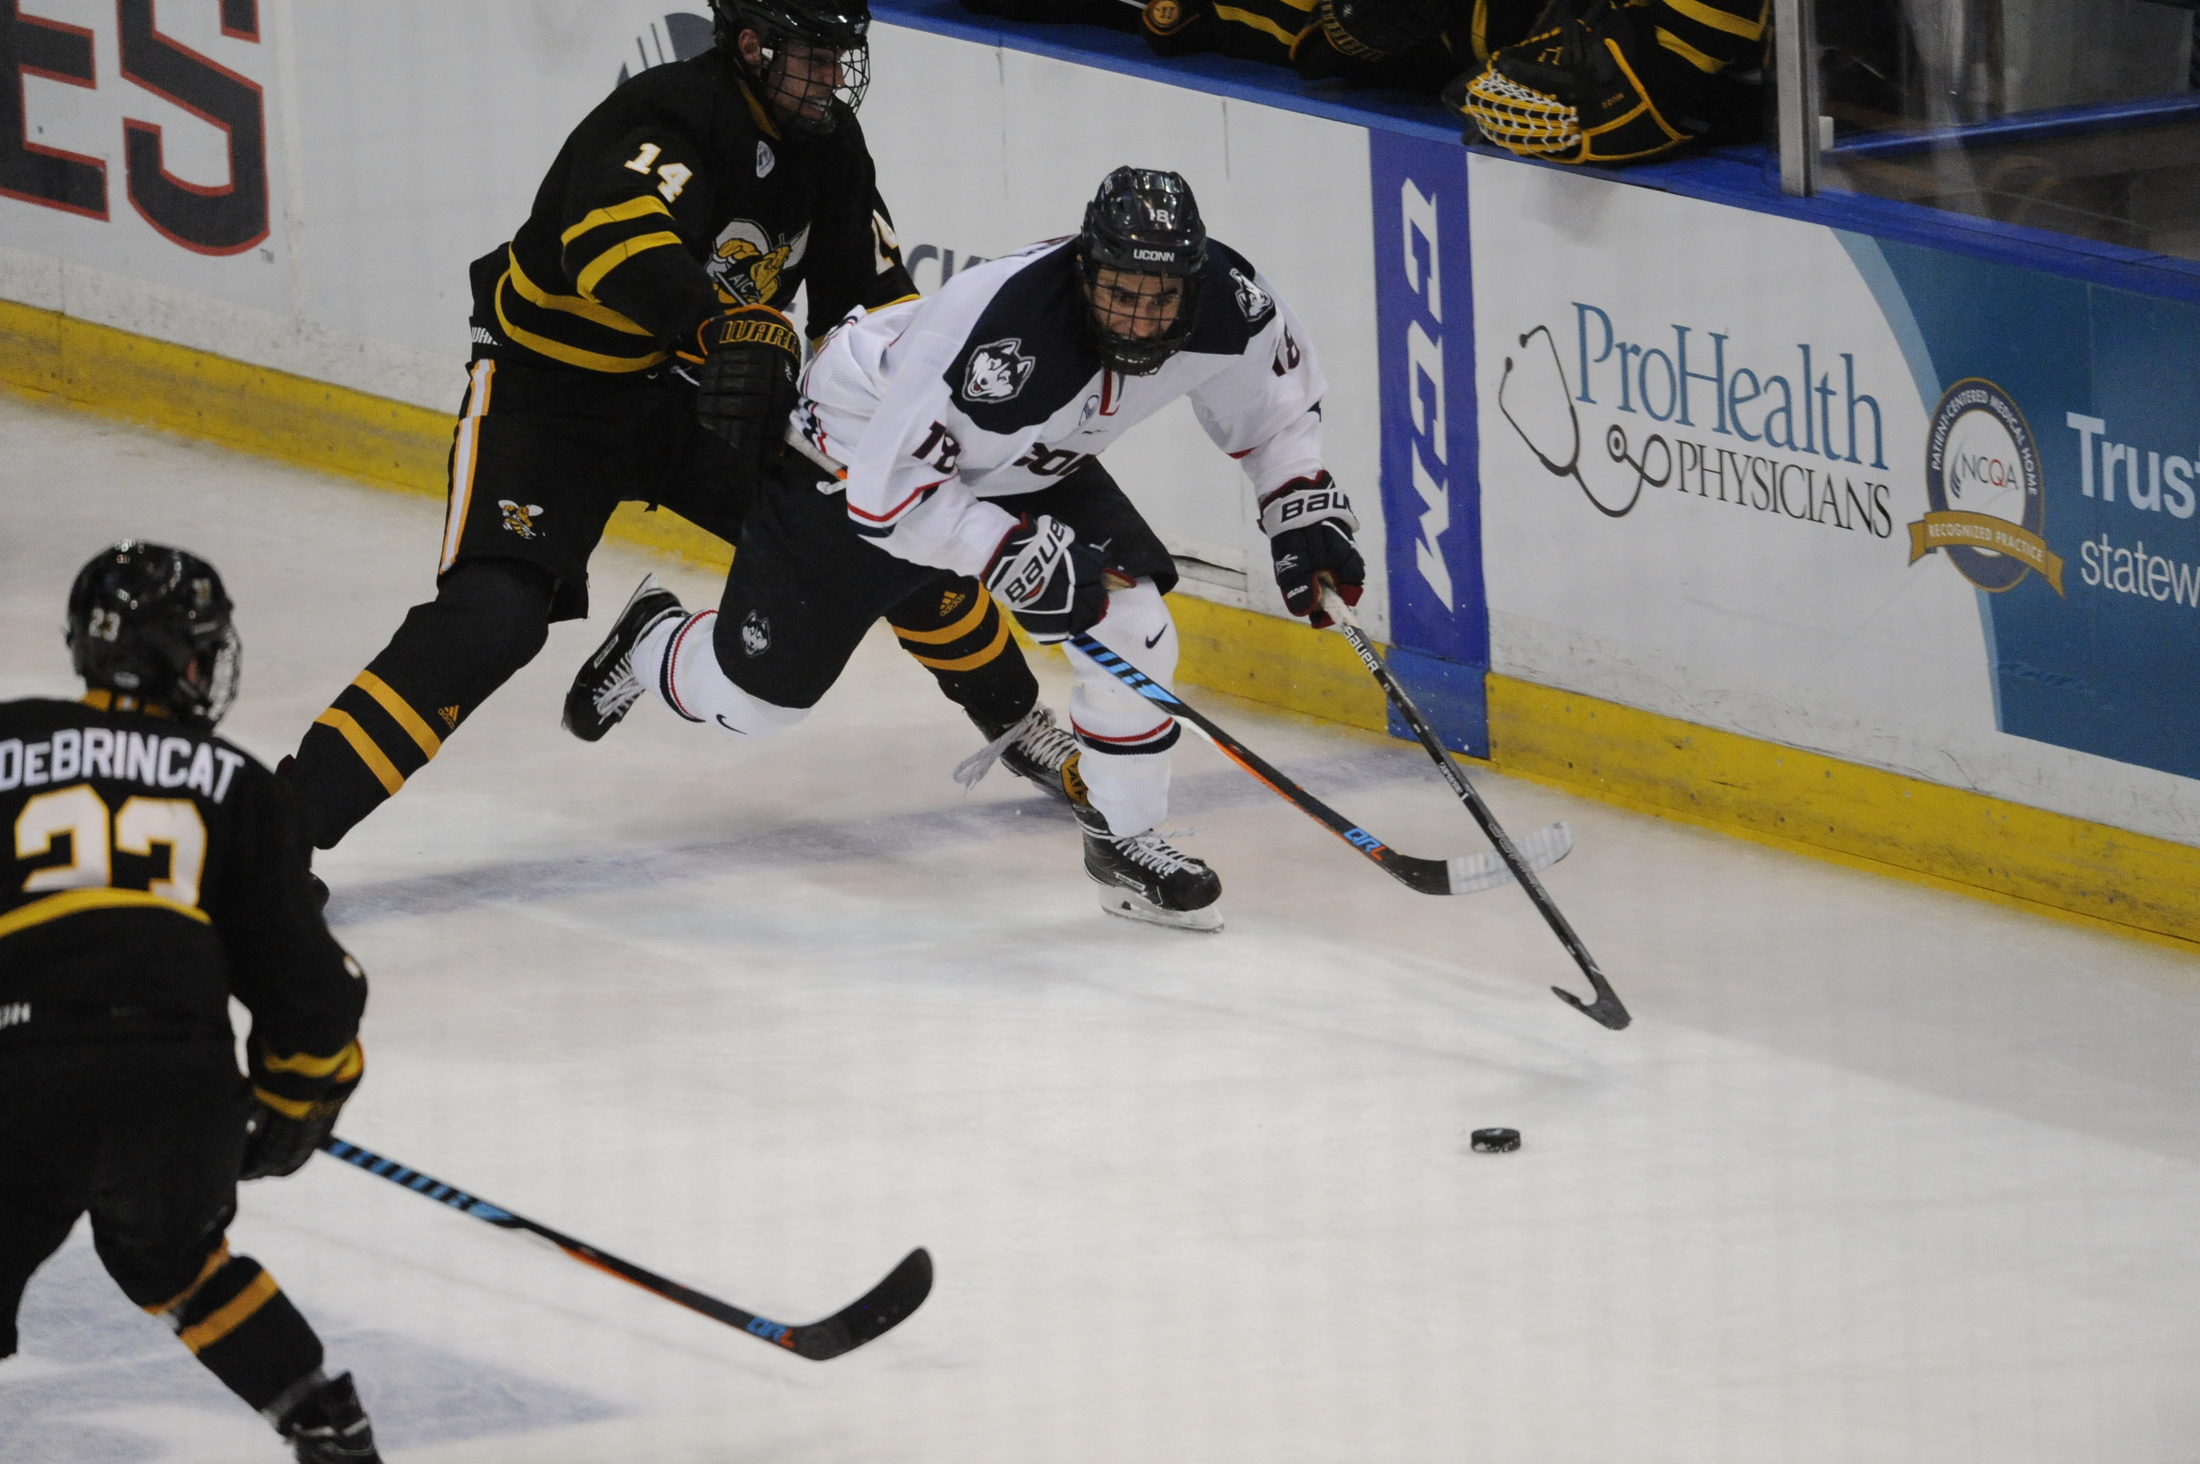 Forward Max Kelter (18) avoids forward Jared Pike (14) during the Huskies 2-2 tie against the AIC Hornets on Oct. 23, 2016 at the XL Center in Hartford, CT. (Jason Jiang/The Daily Campus)